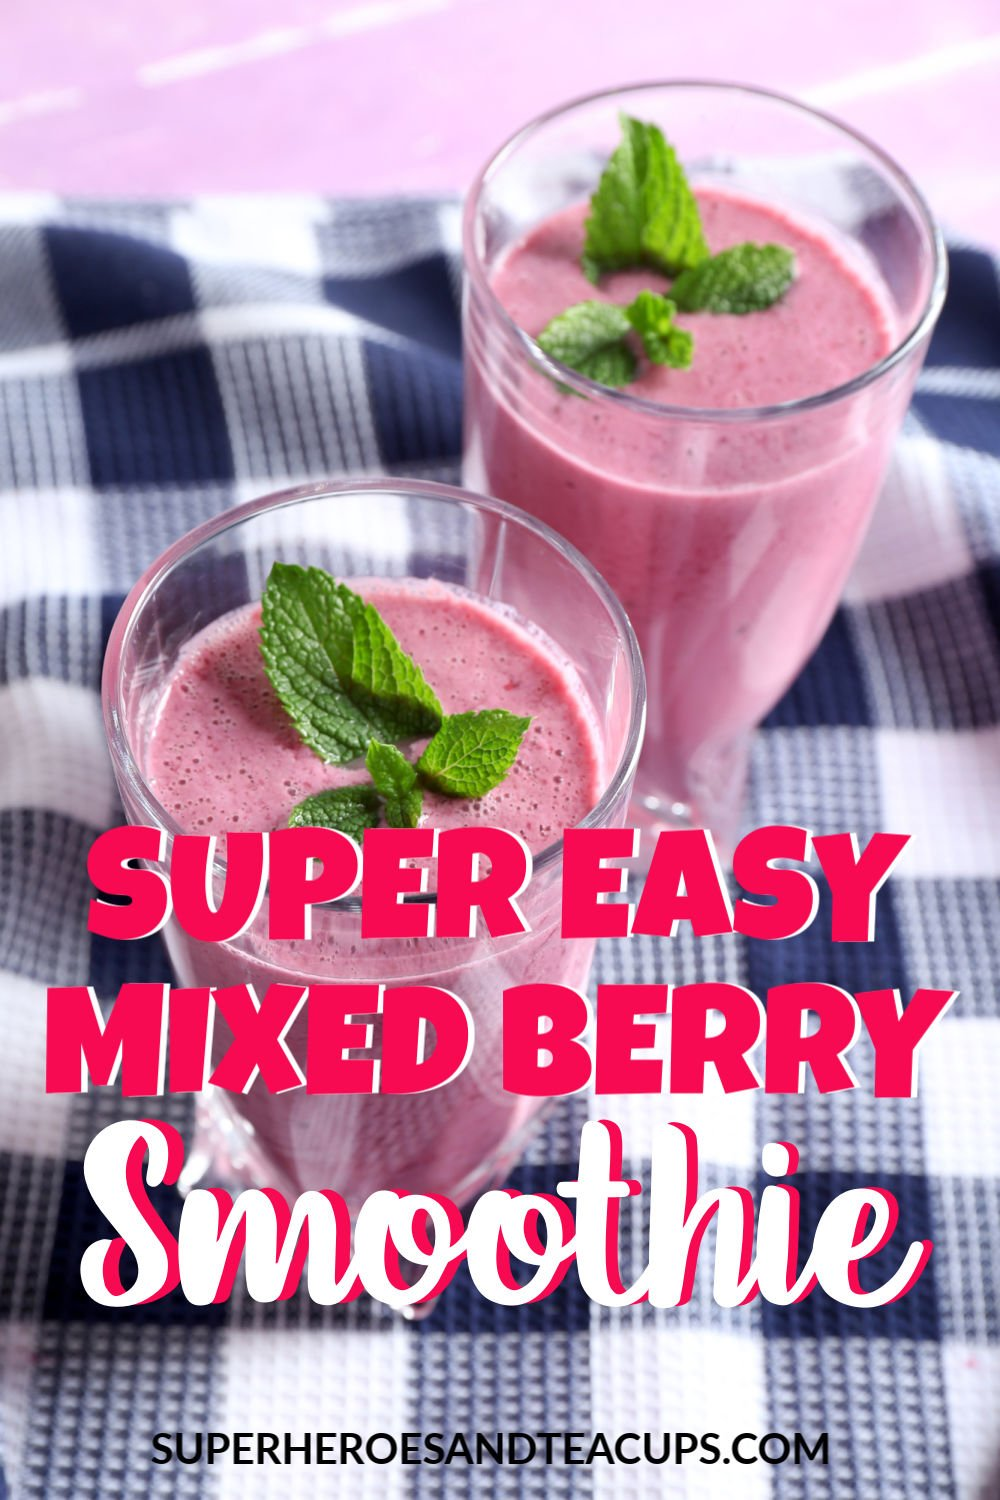 Super easy mixed berry smoothie.